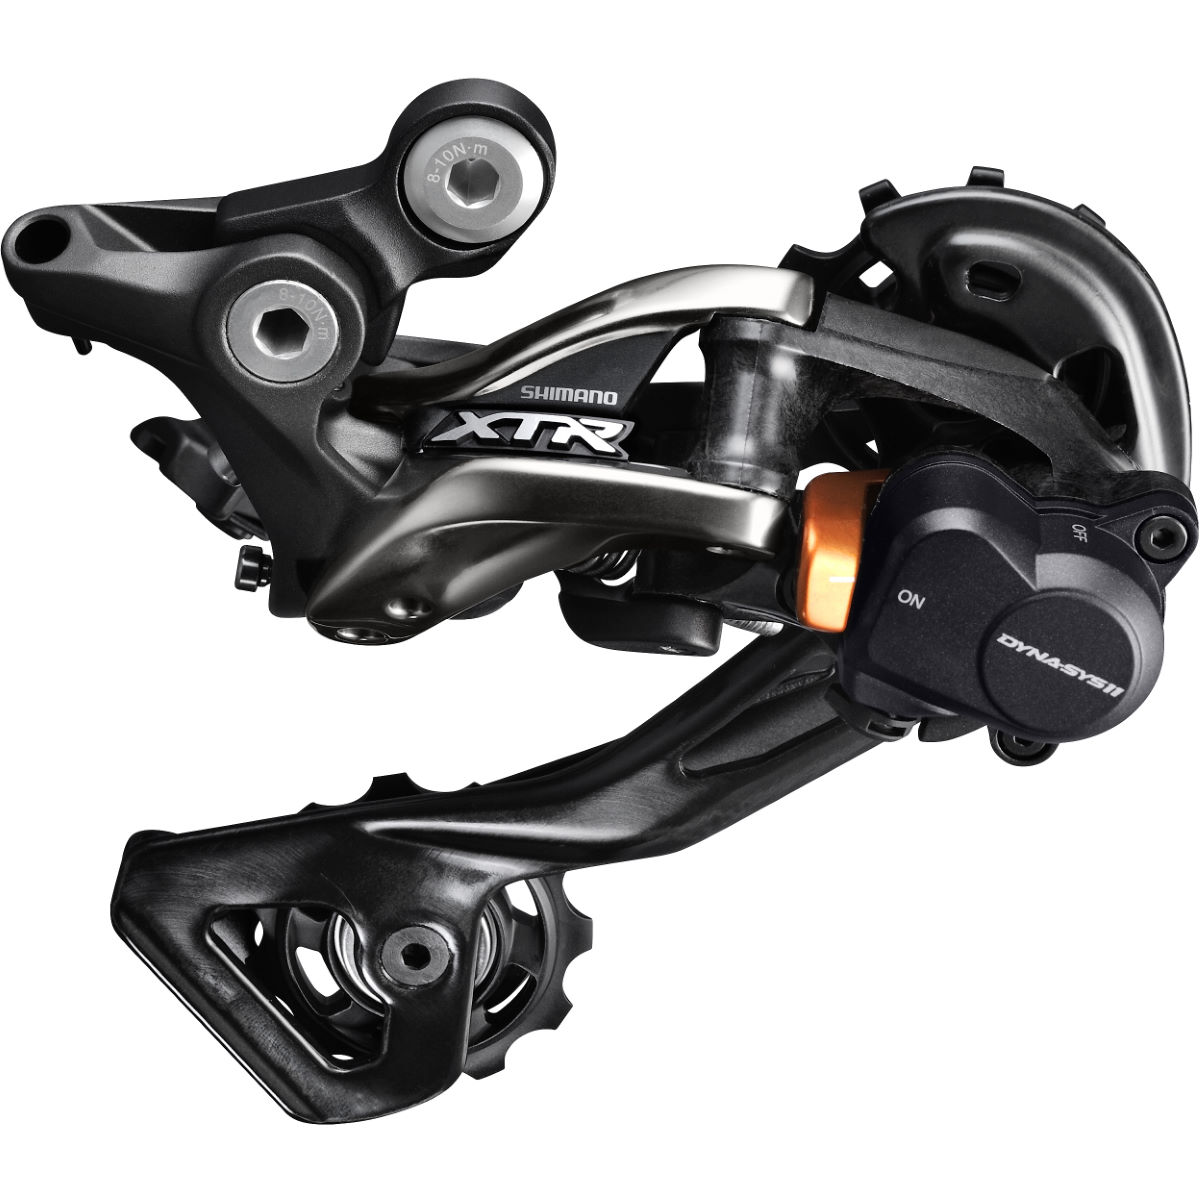 Shimano XTR M9000 Shadow+ 11 Speed Rear Mech – GS Medium Cage Black